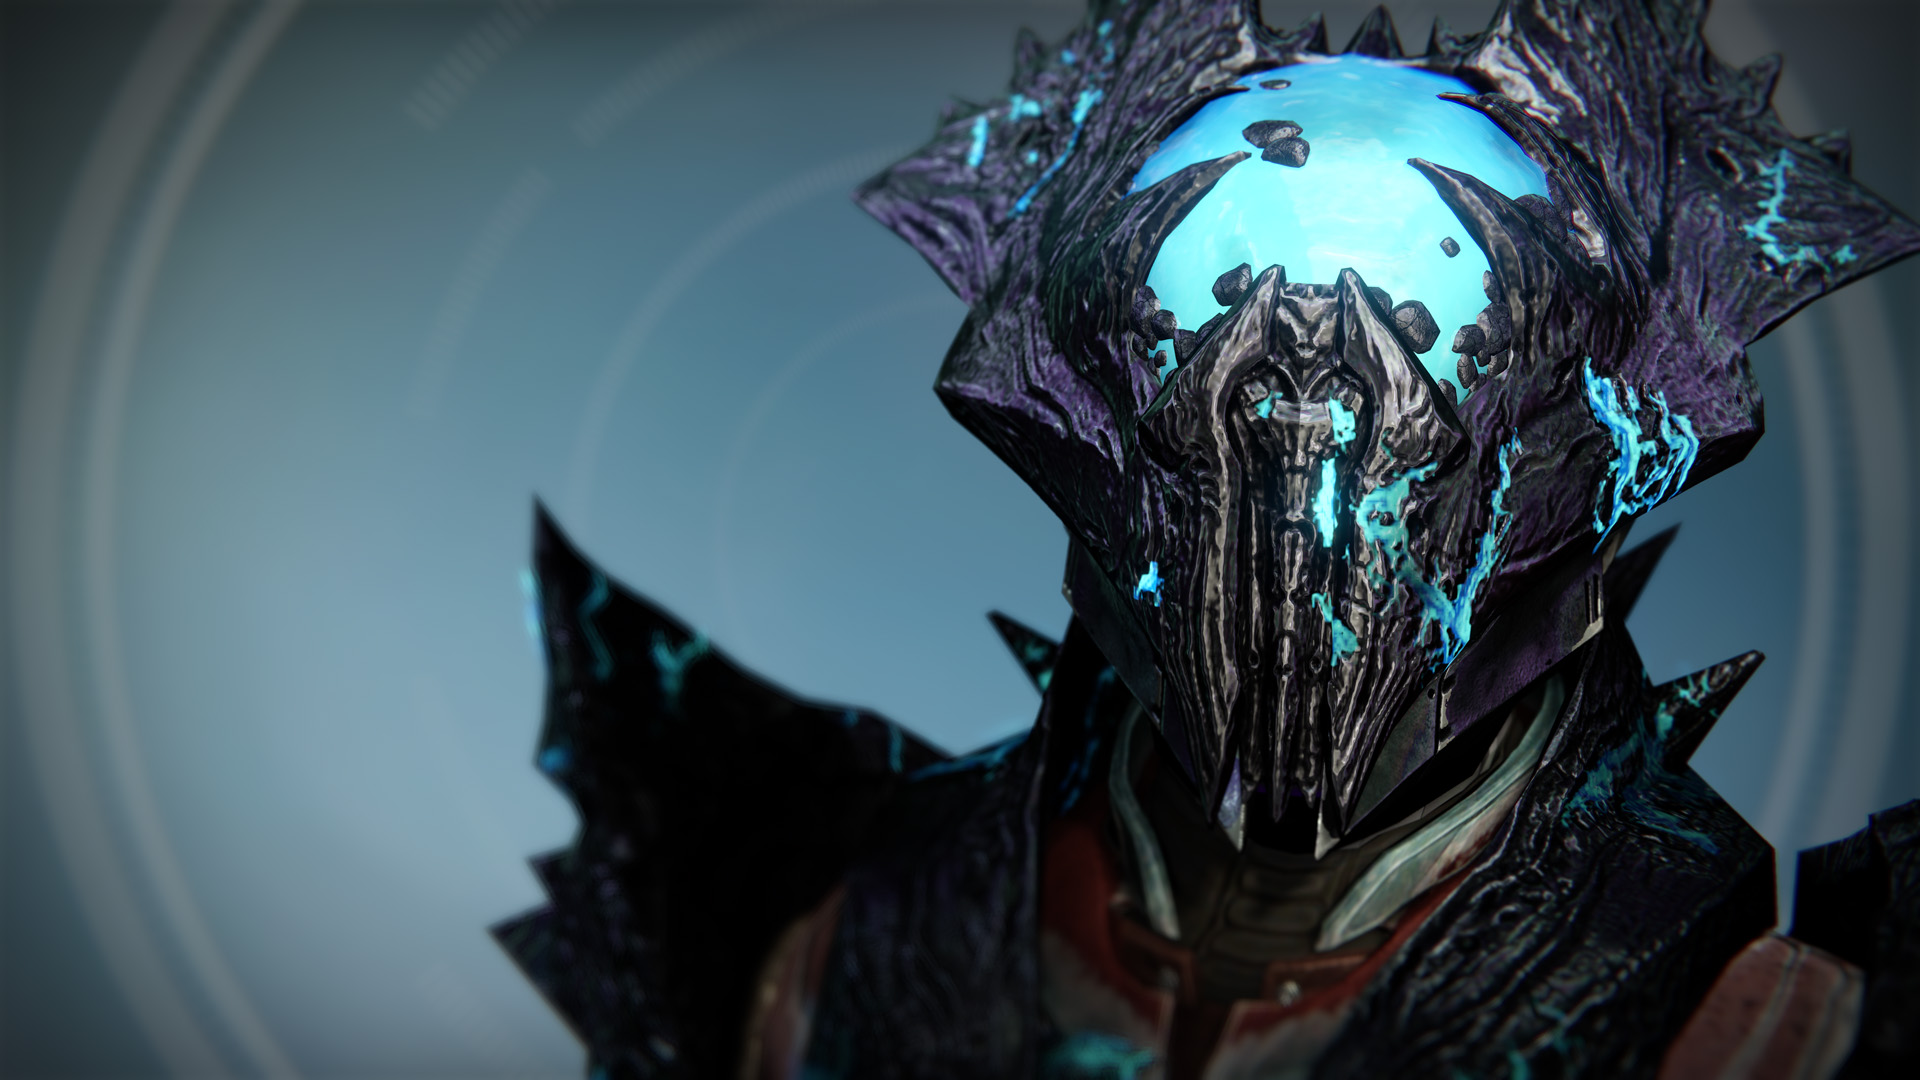 Destiny: Age of Triumph - here's a look at Raid armor from